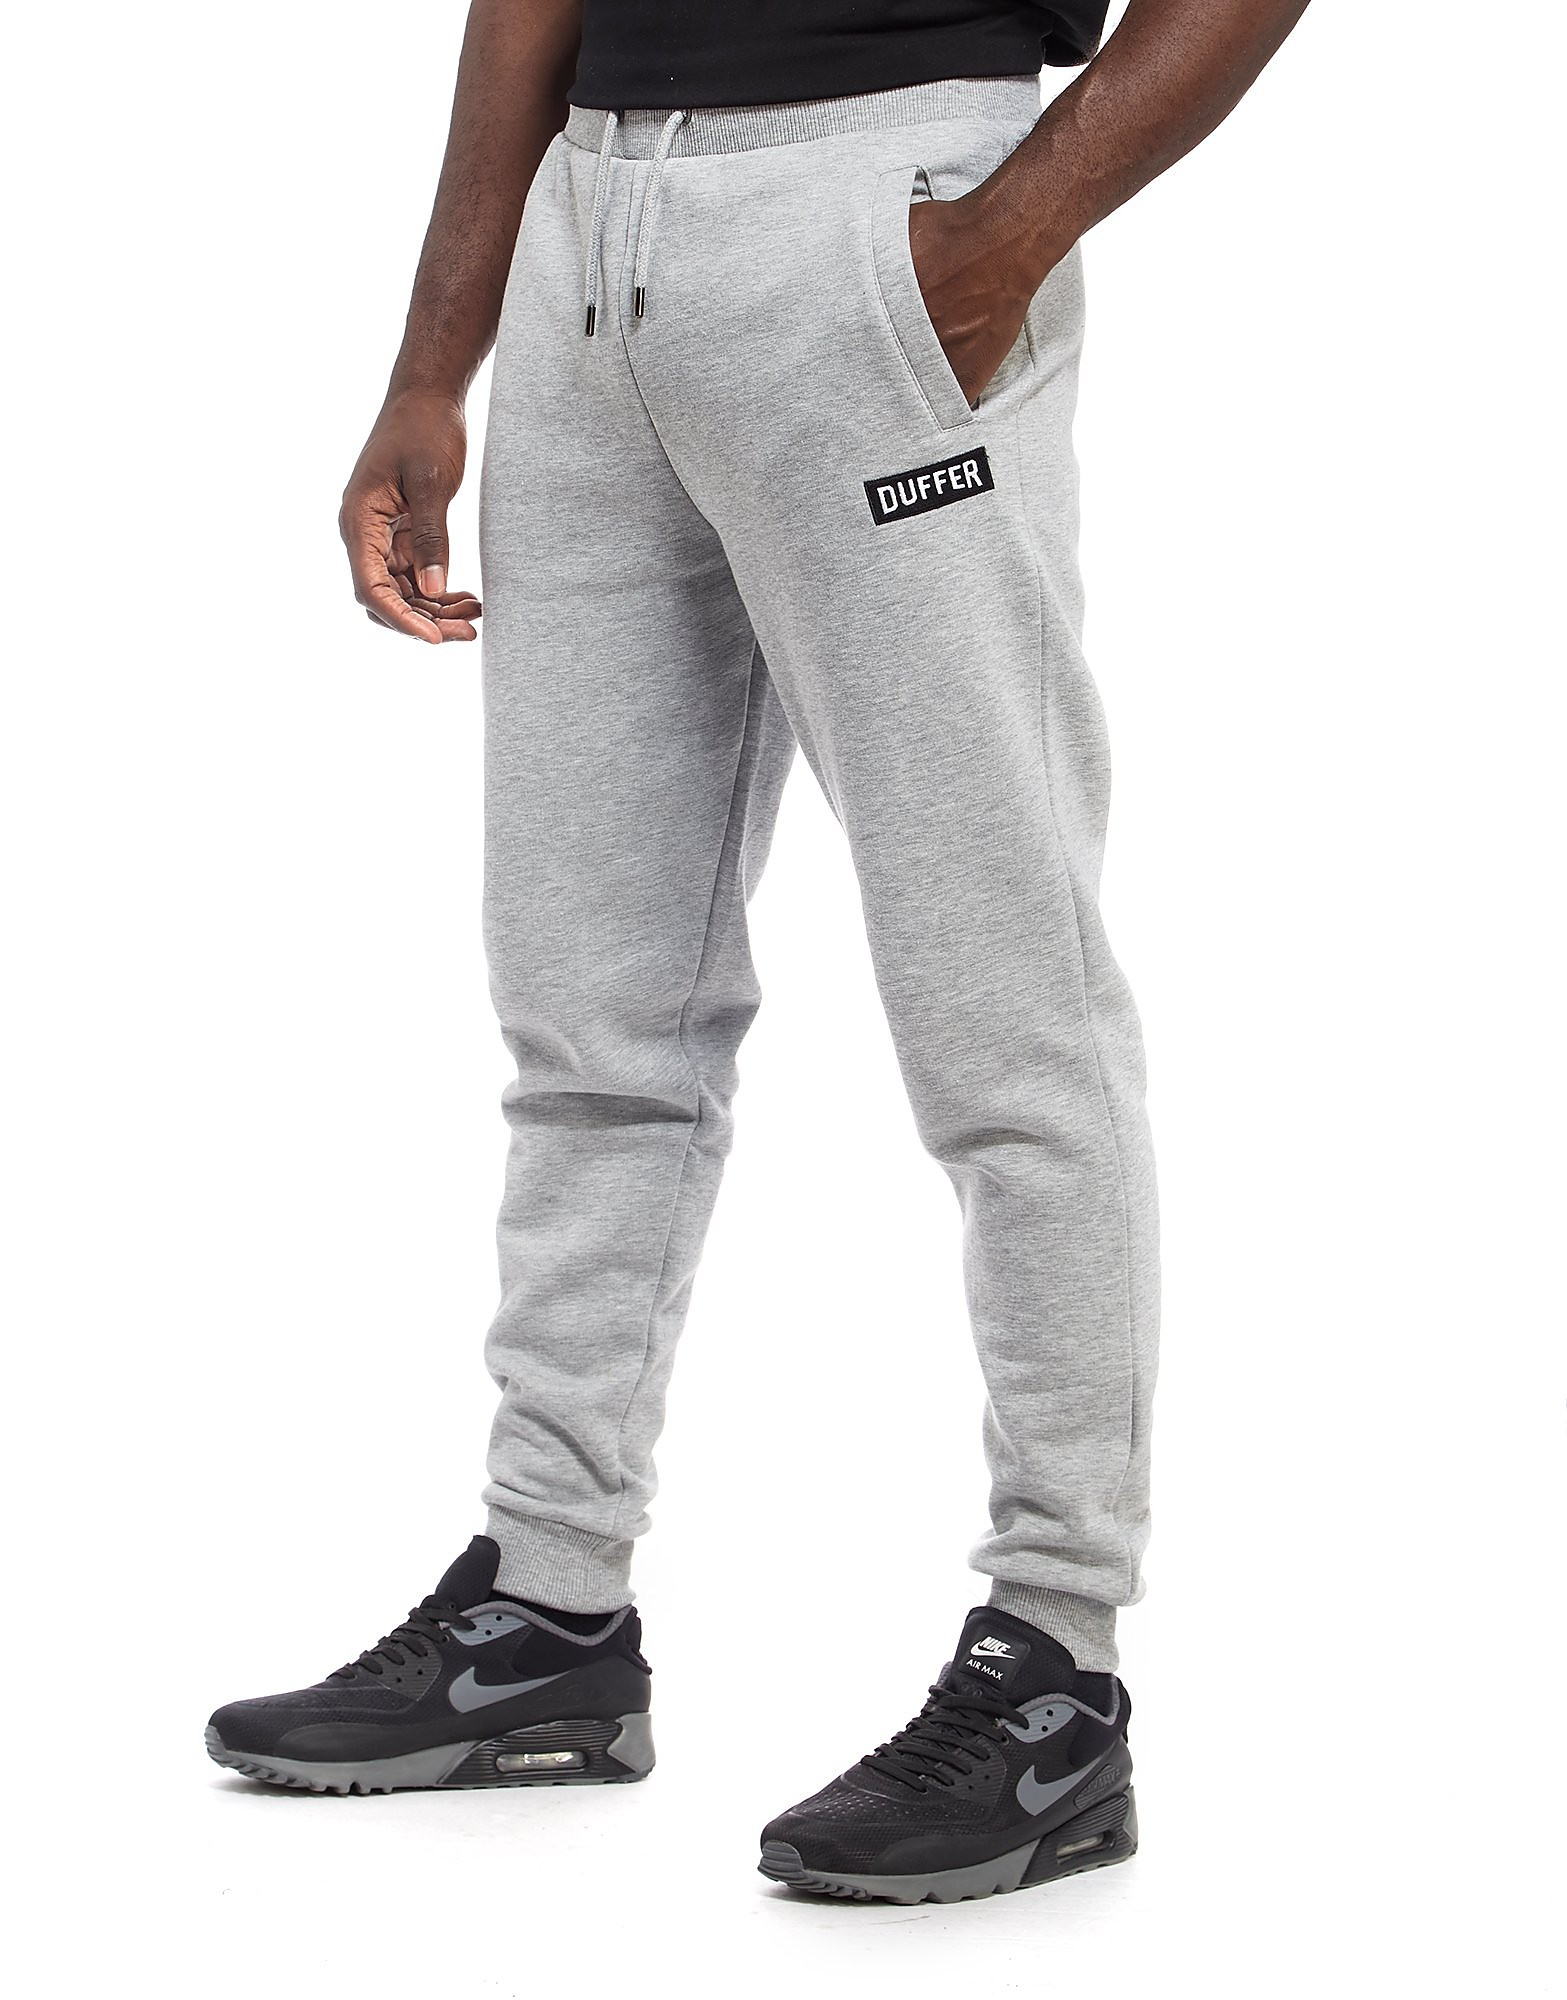 Duffer of St George Ormiston Jogging Pants